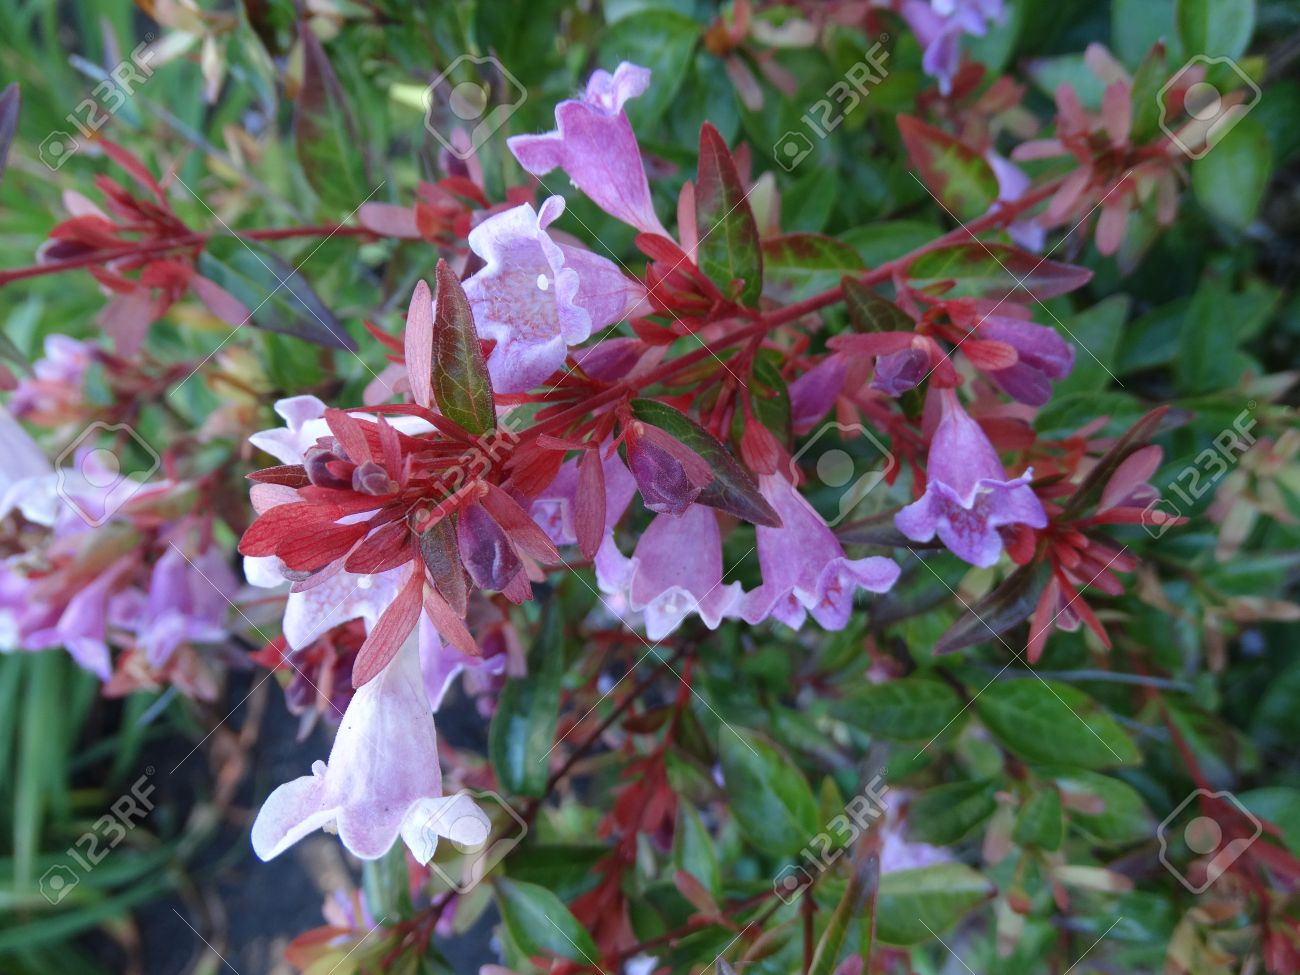 Shrubs with purple flowers at end of branch - Engler Abelia Abelia Angeleriana Semi Evergreen Shrub With Arching Branches Ovate Bright